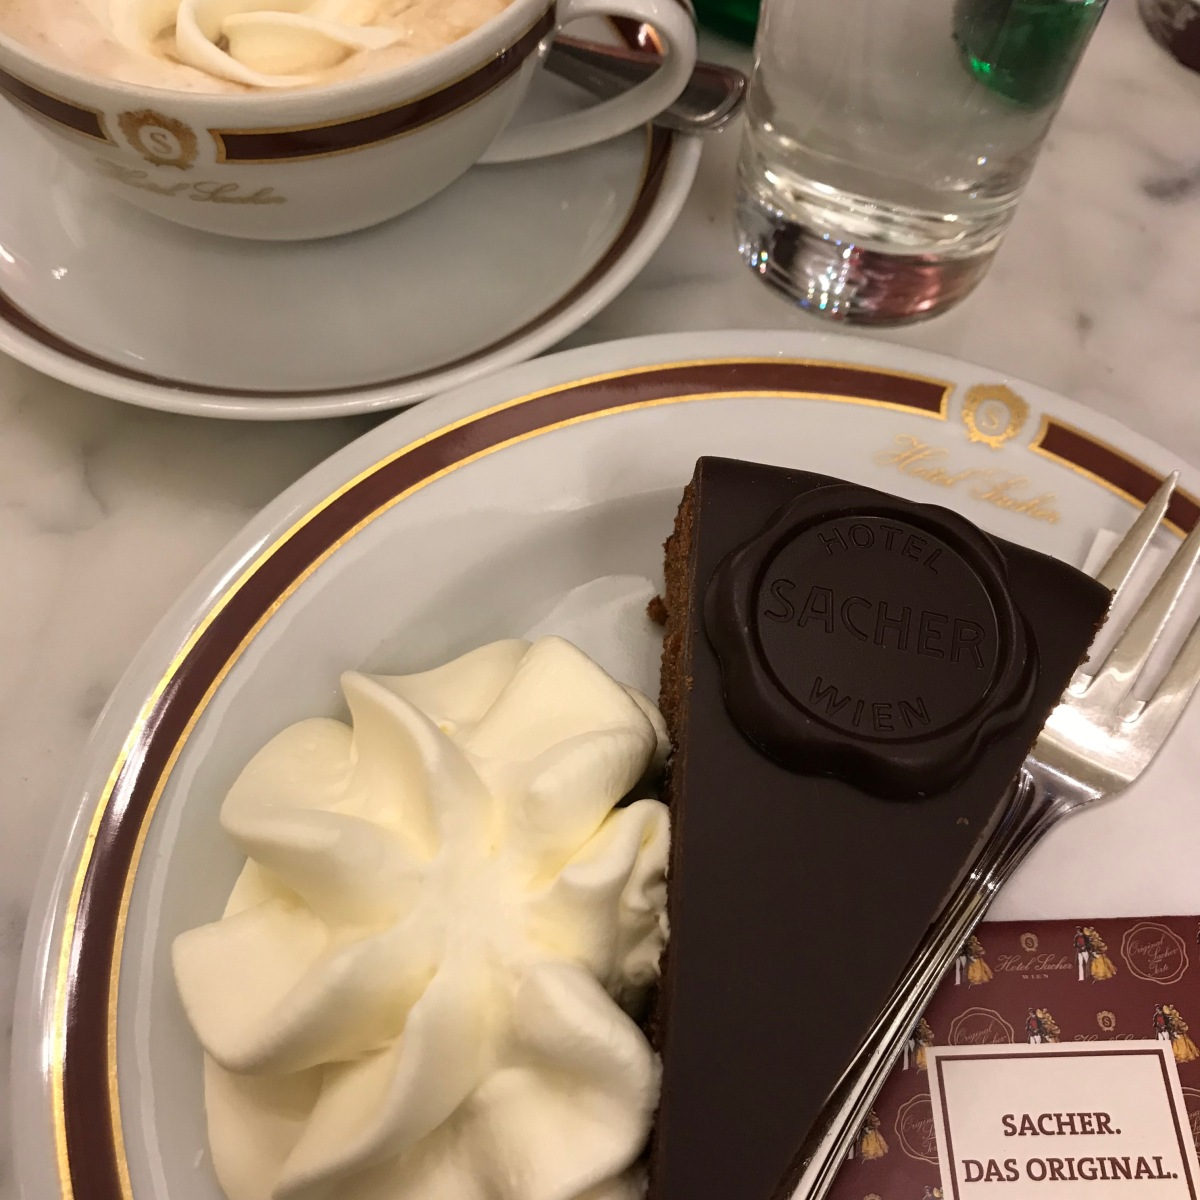 Sachertorte chocolate cake with whipped cream at Hotel Sacher in Vienna